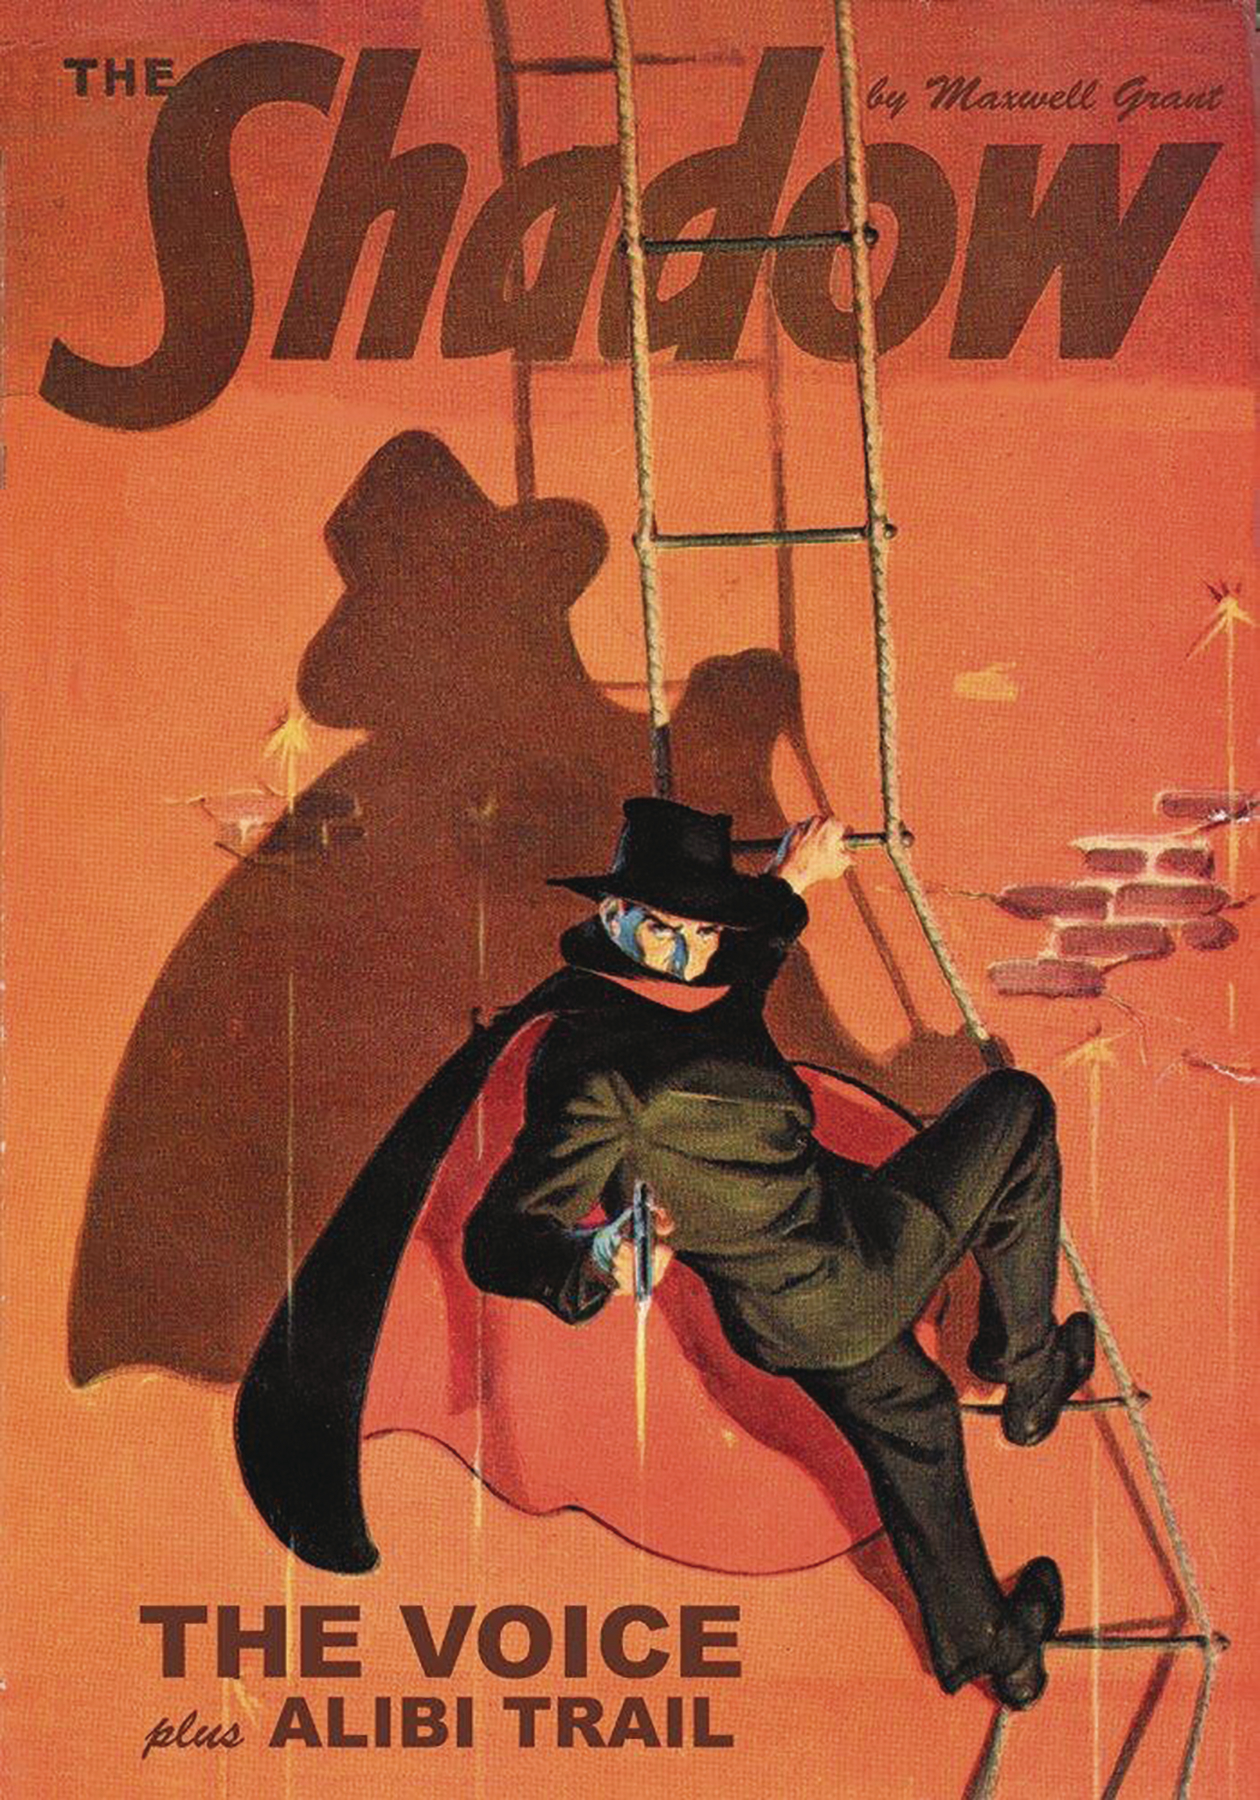 SHADOW DOUBLE NOVEL VOL 123 VOICE & ALIBI TRAIL